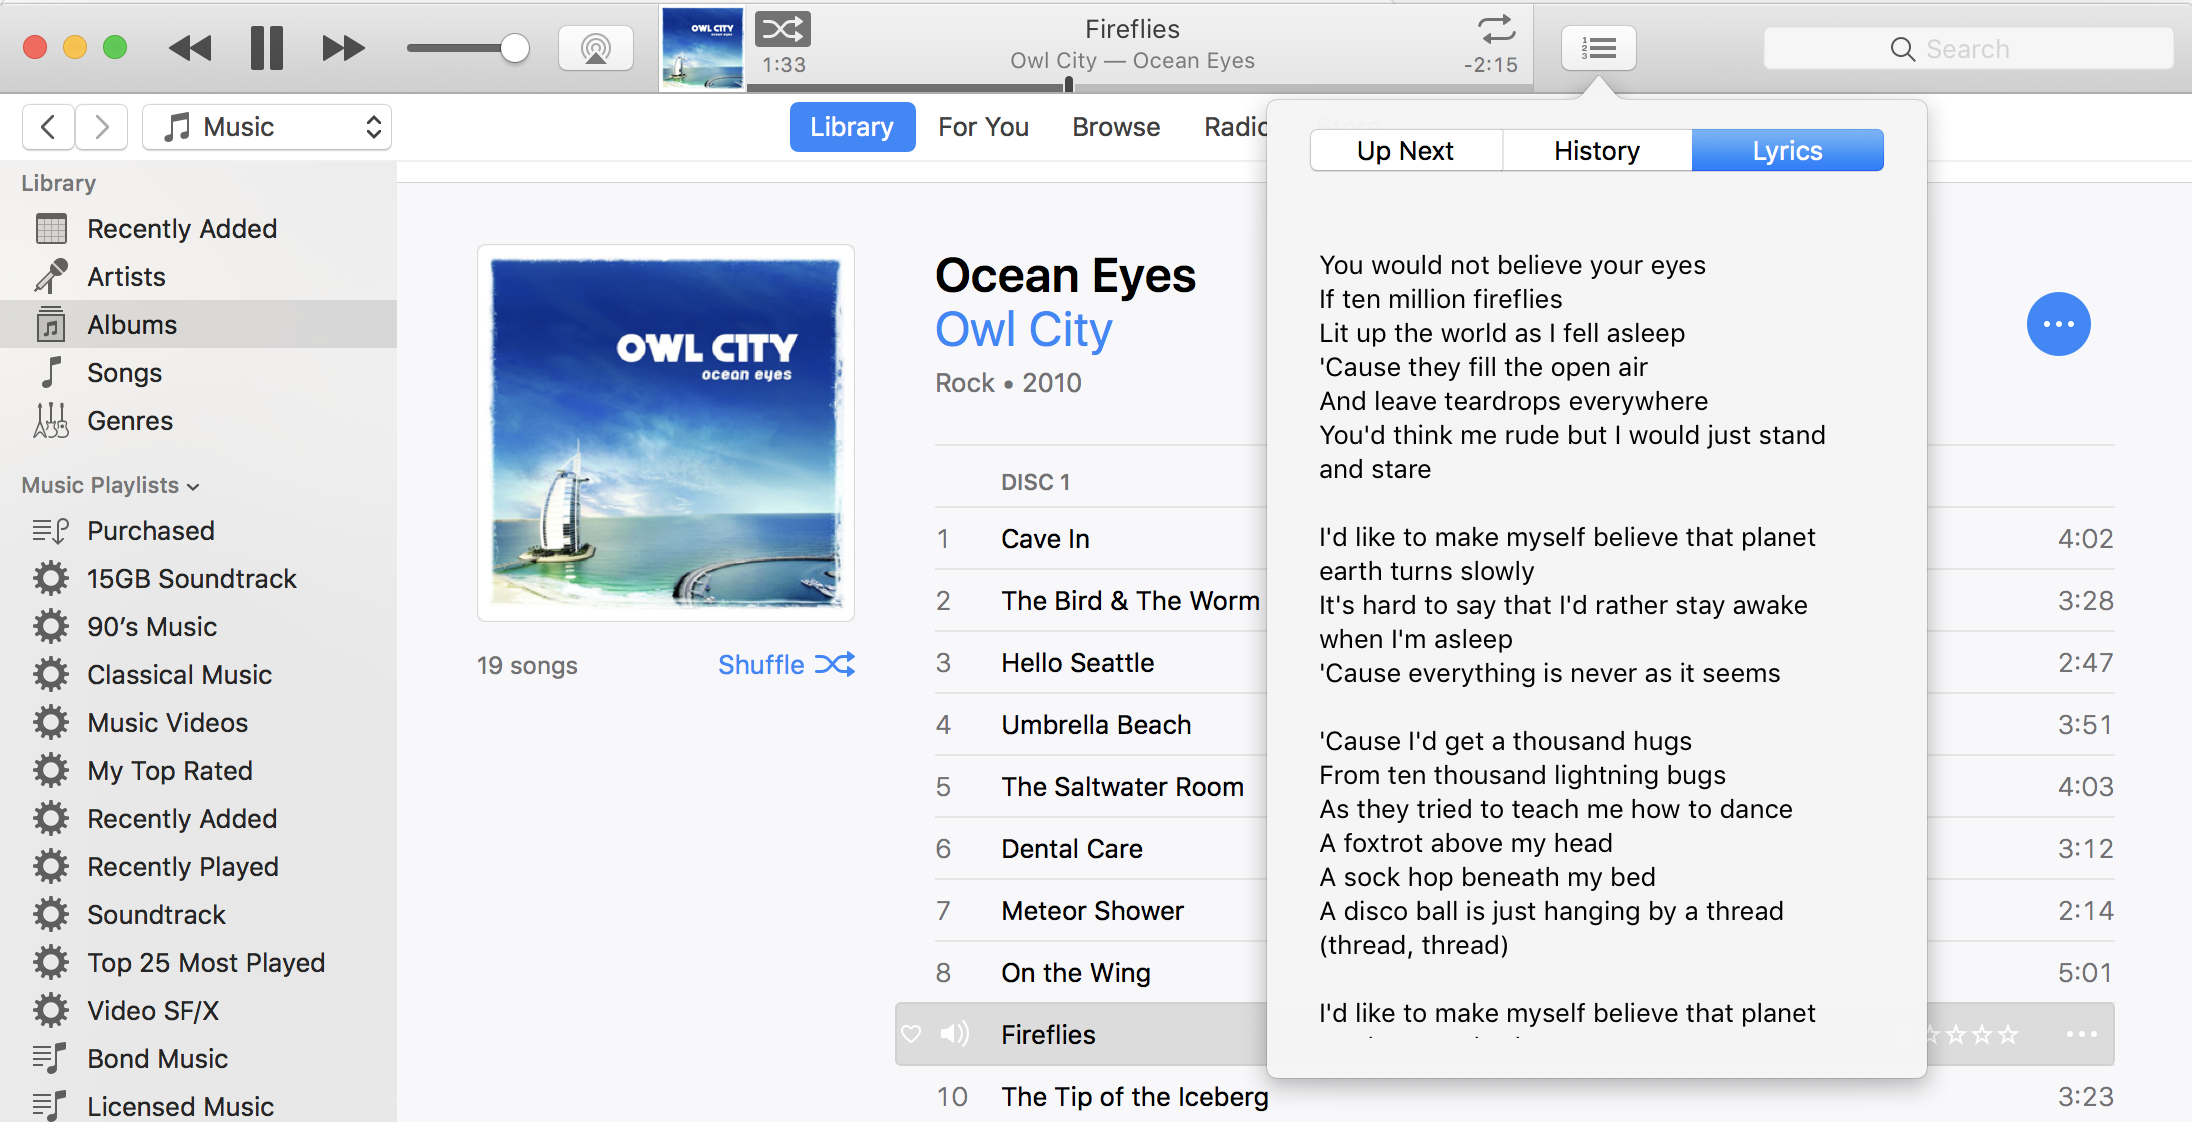 itunes song with lyrics shown owl city fireflies